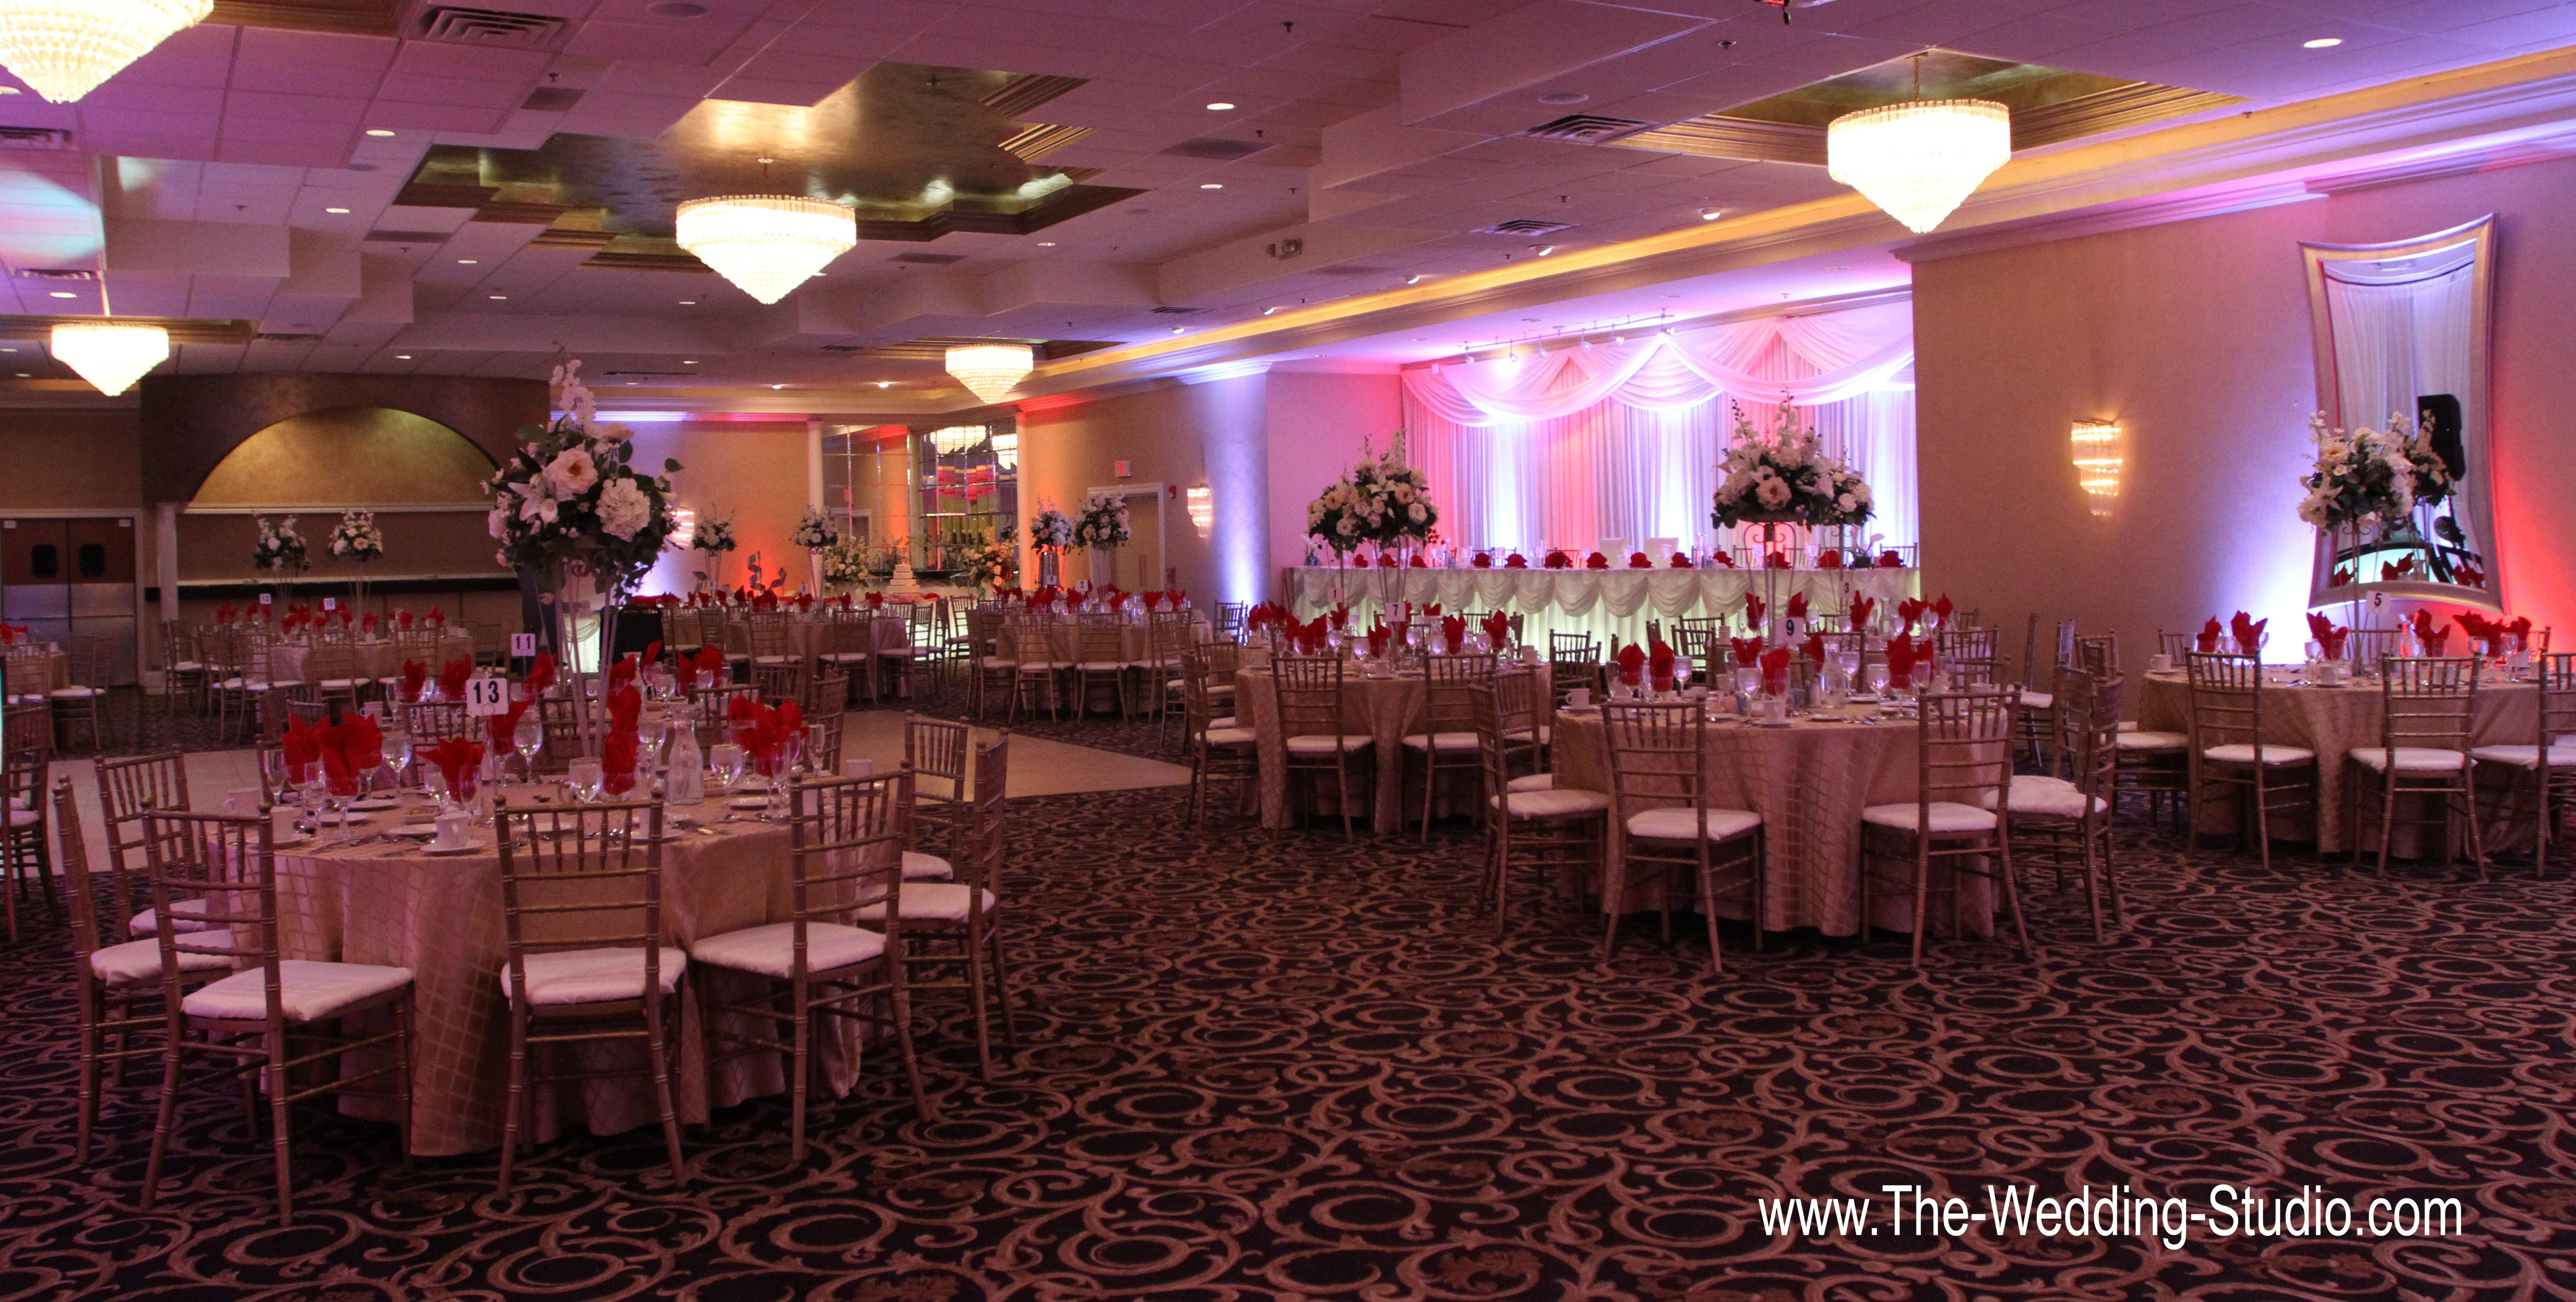 Ballroom Set Up For A January Wedding At The Seville Banquets In Streamwood Photographed By